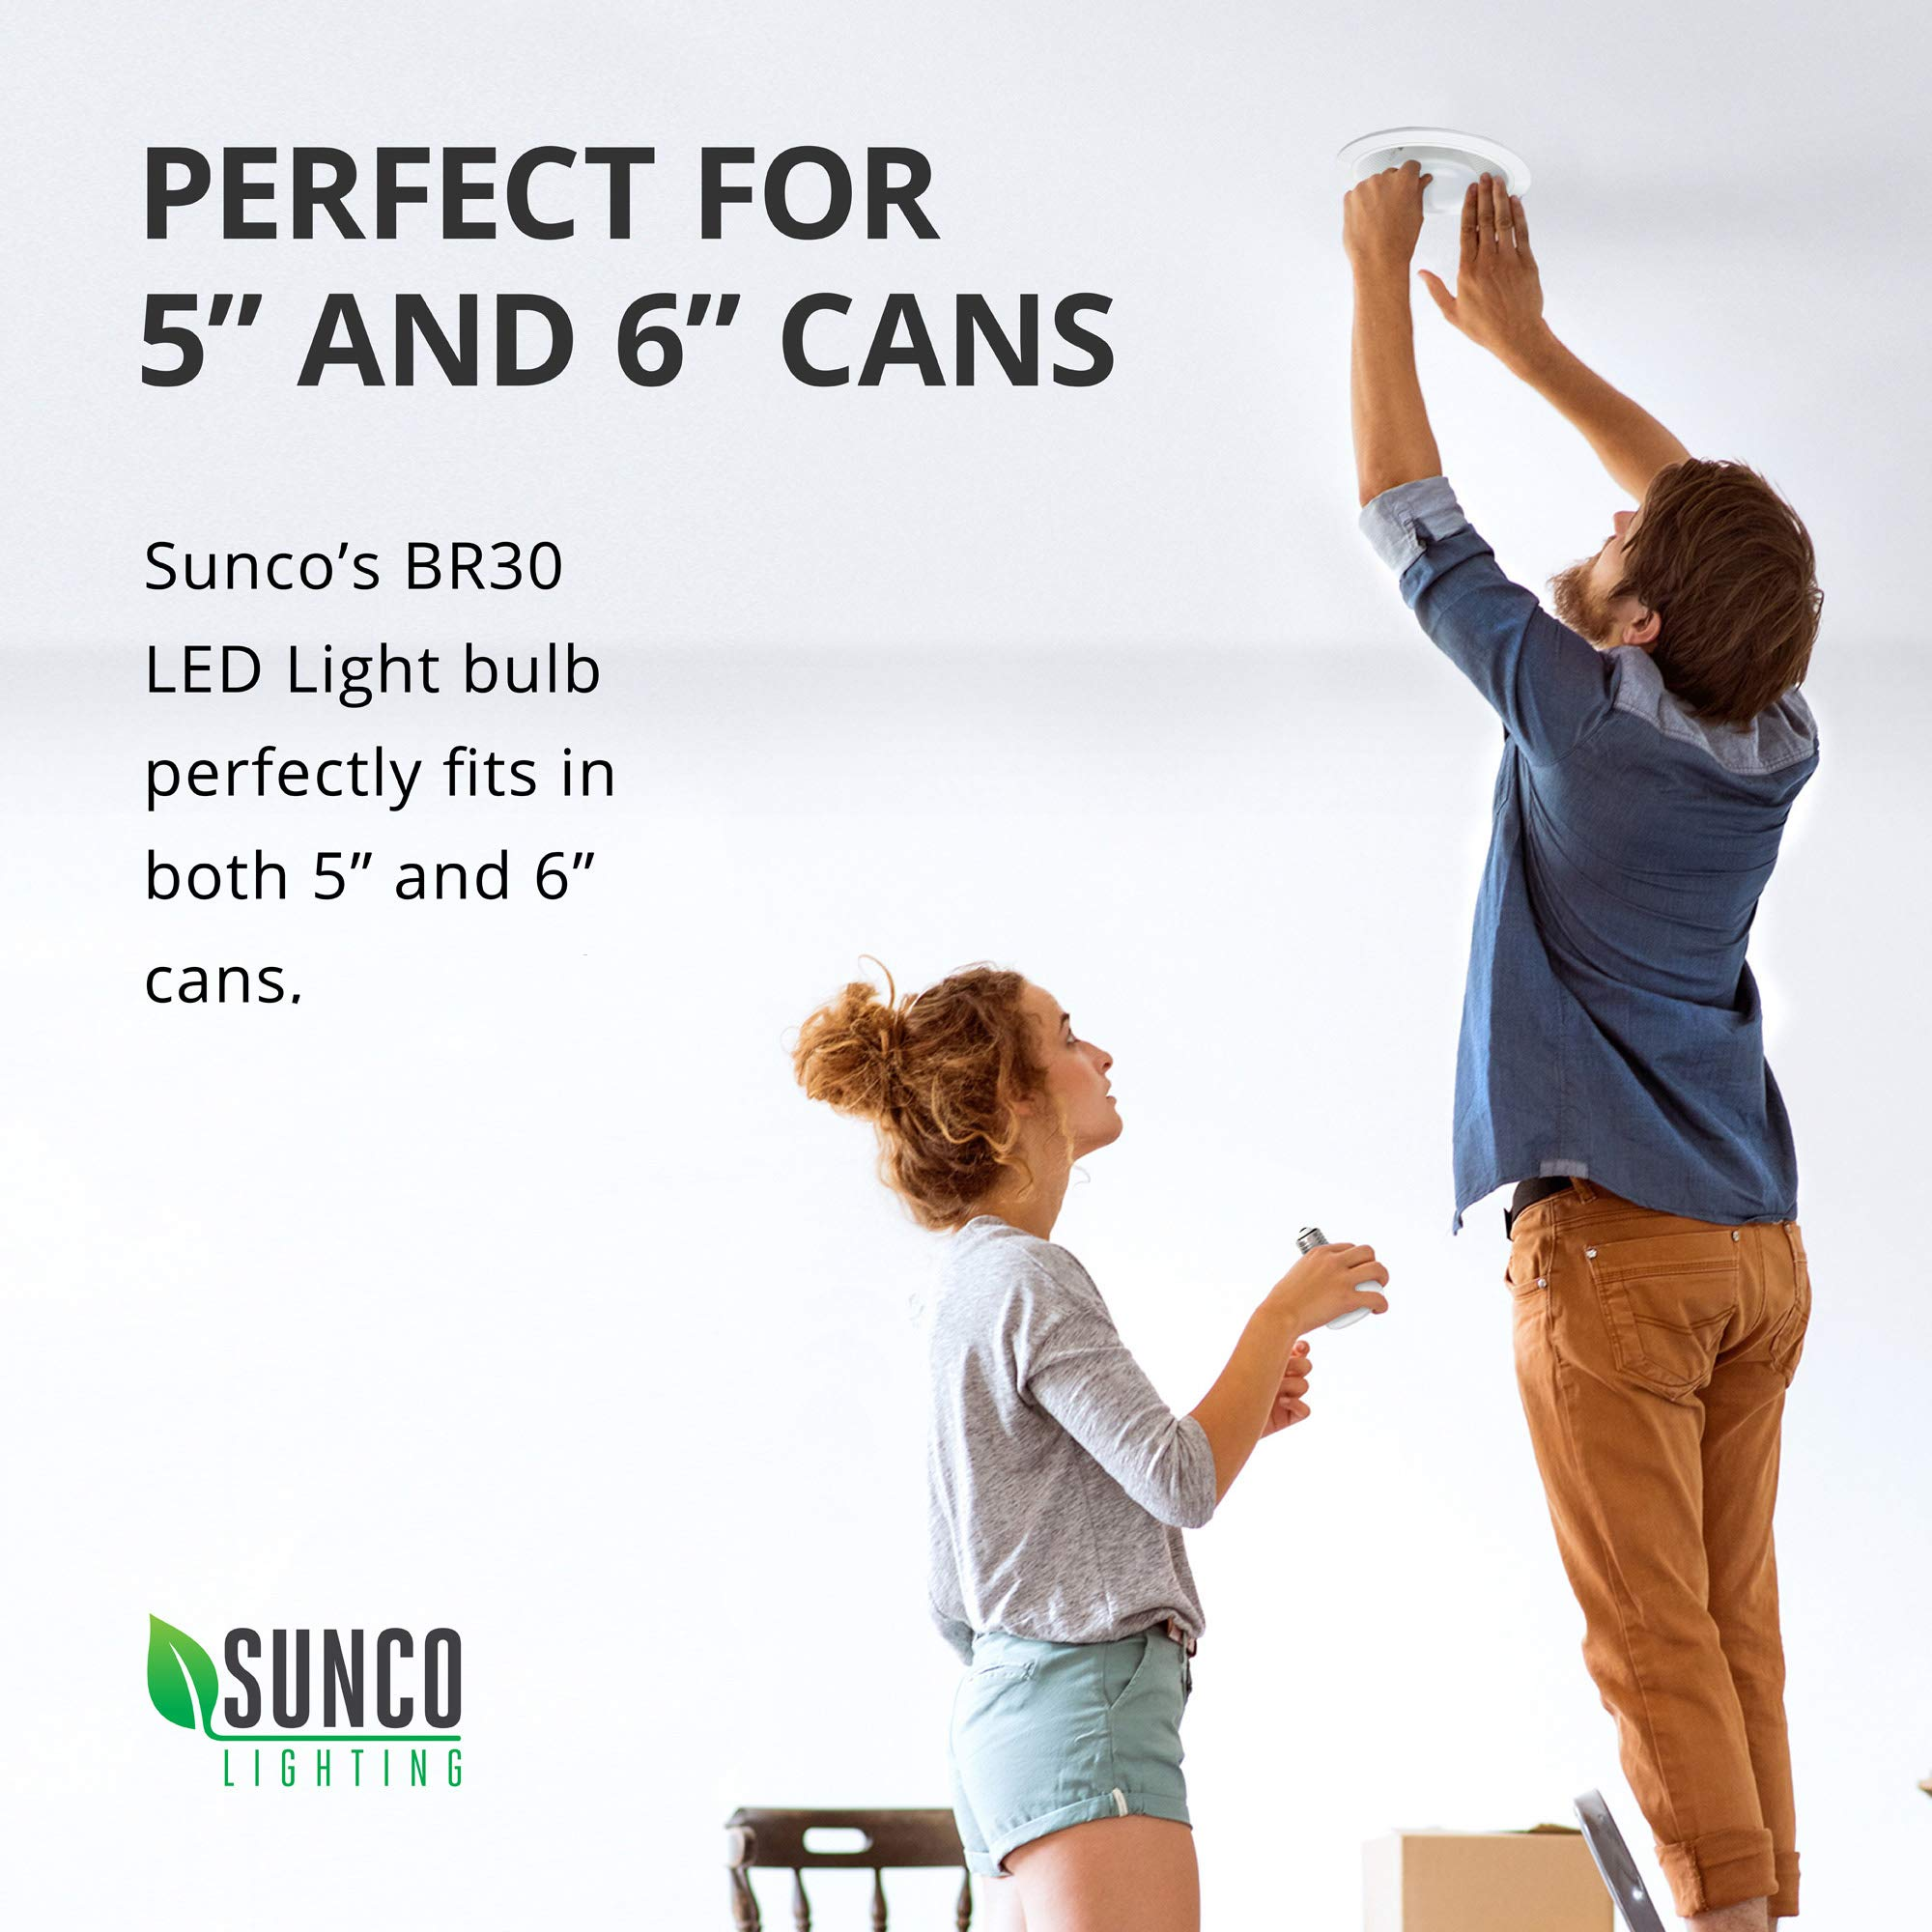 Sunco Lighting 48 Pack BR30 LED Bulb 11W=65W, 2700K Soft White, 850 LM, E26 Base, Dimmable, Indoor Flood Light for Cans - UL & Energy Star by Sunco Lighting (Image #8)